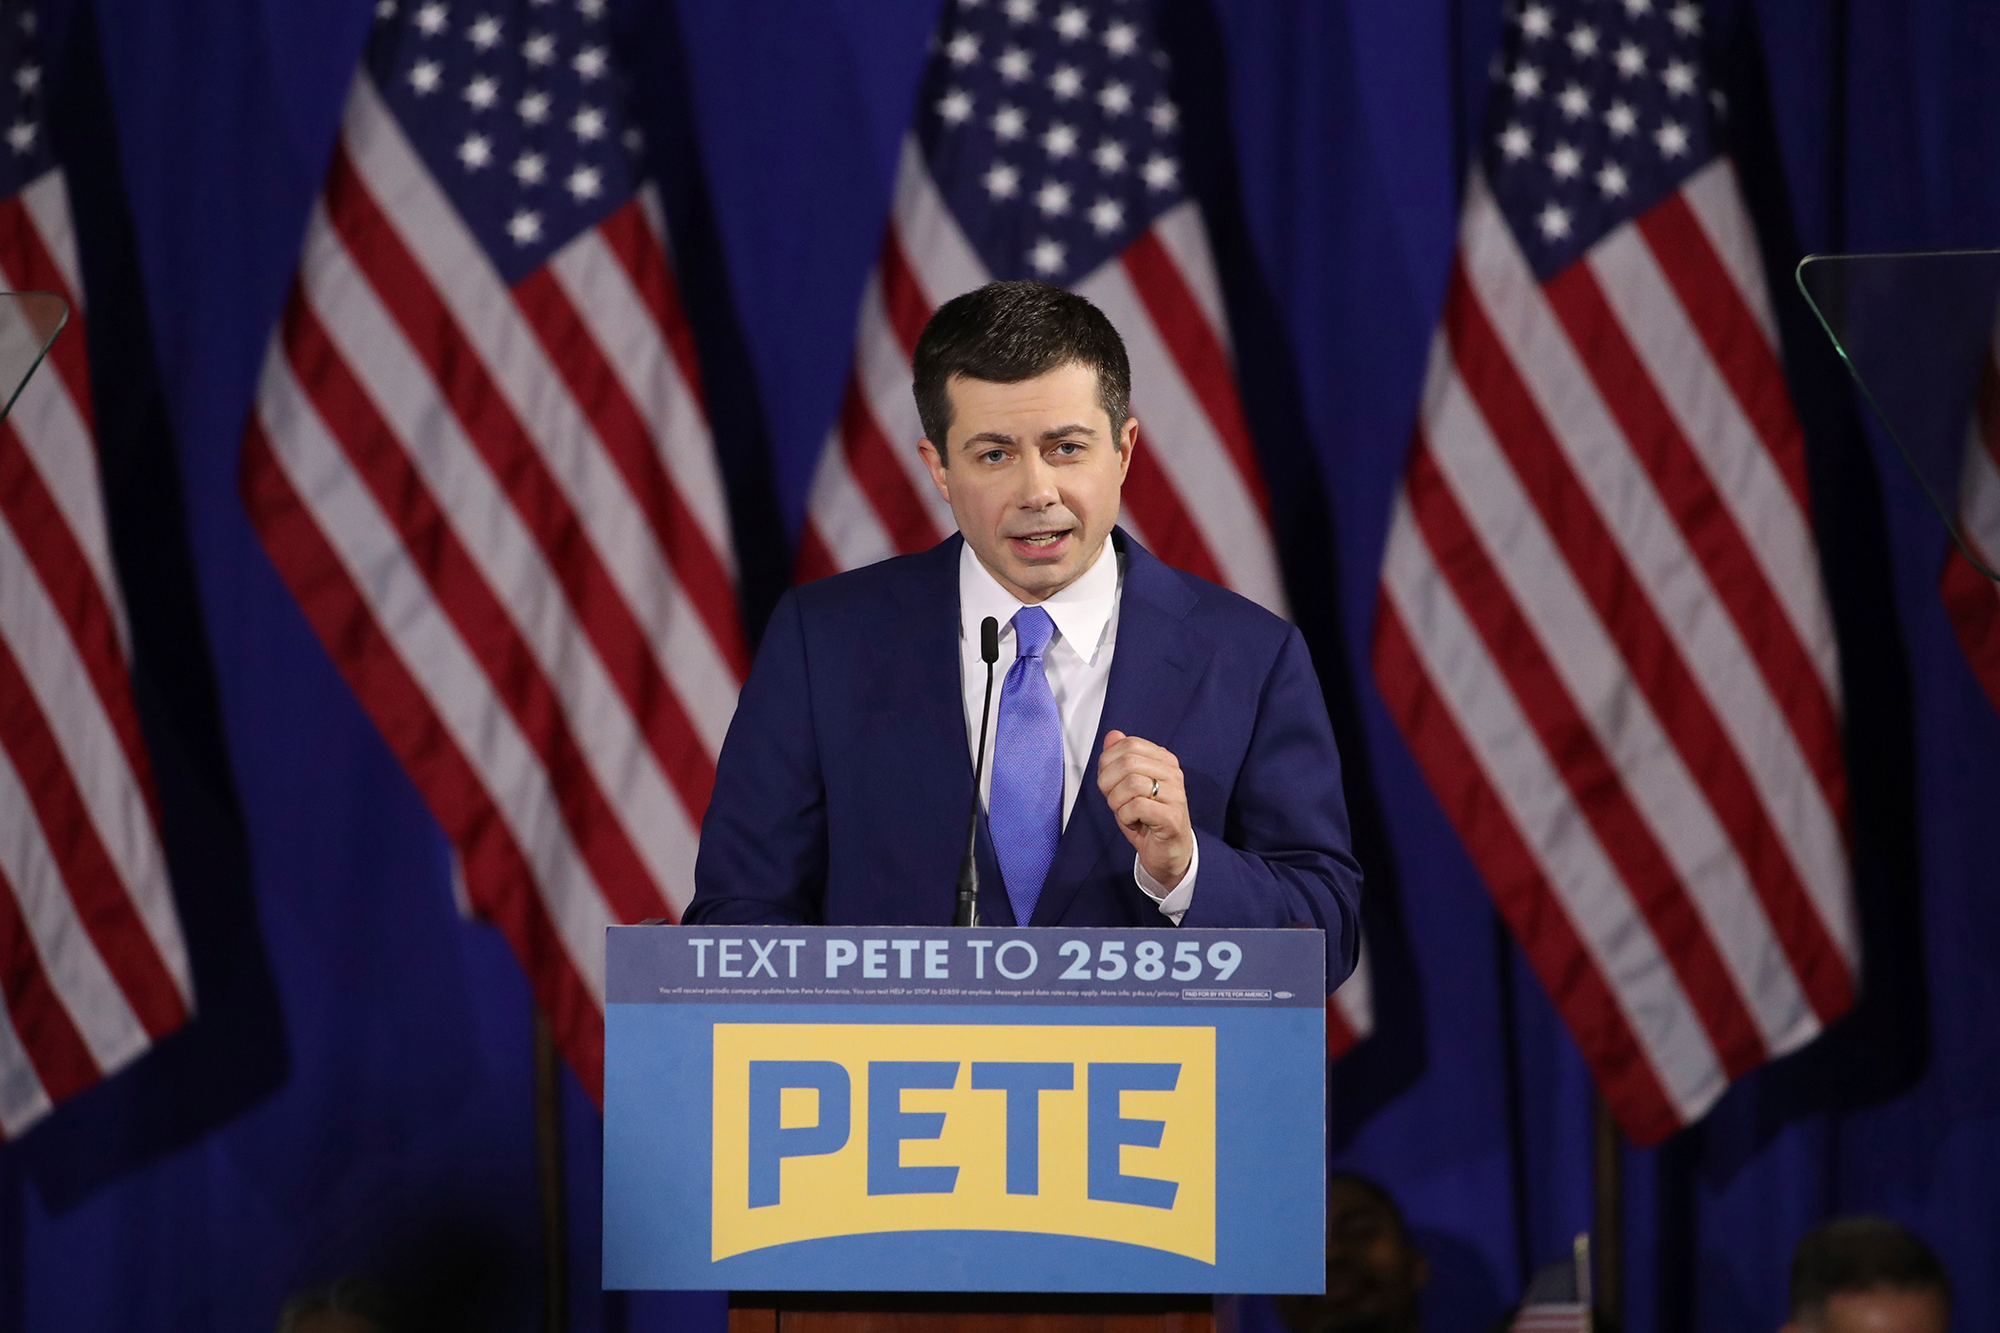 Buttigieg tells voter worried about 'socialist' Sanders losing to Trump: 'I share that concern'